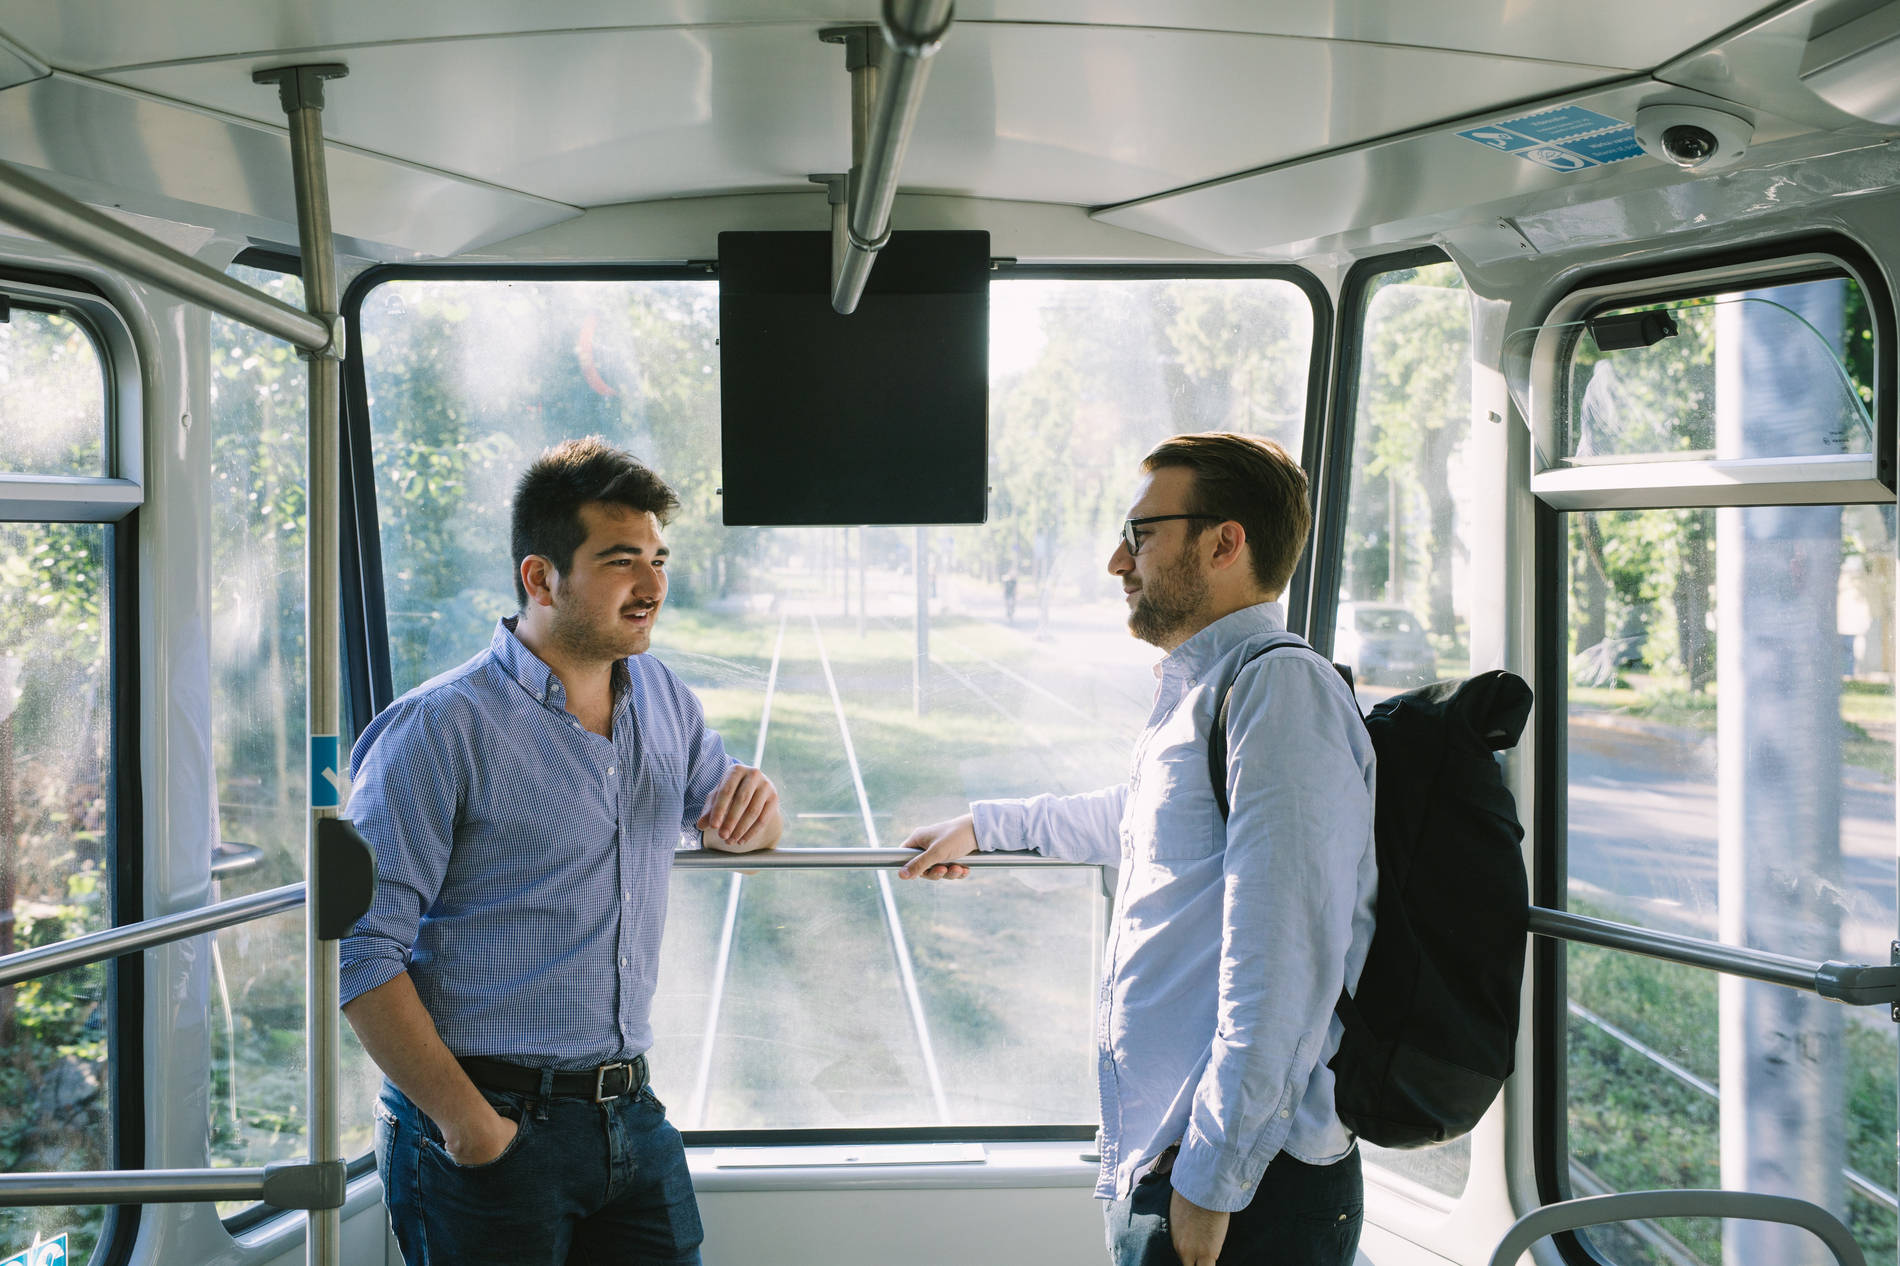 Men in a tram in Tallinn, Estonia